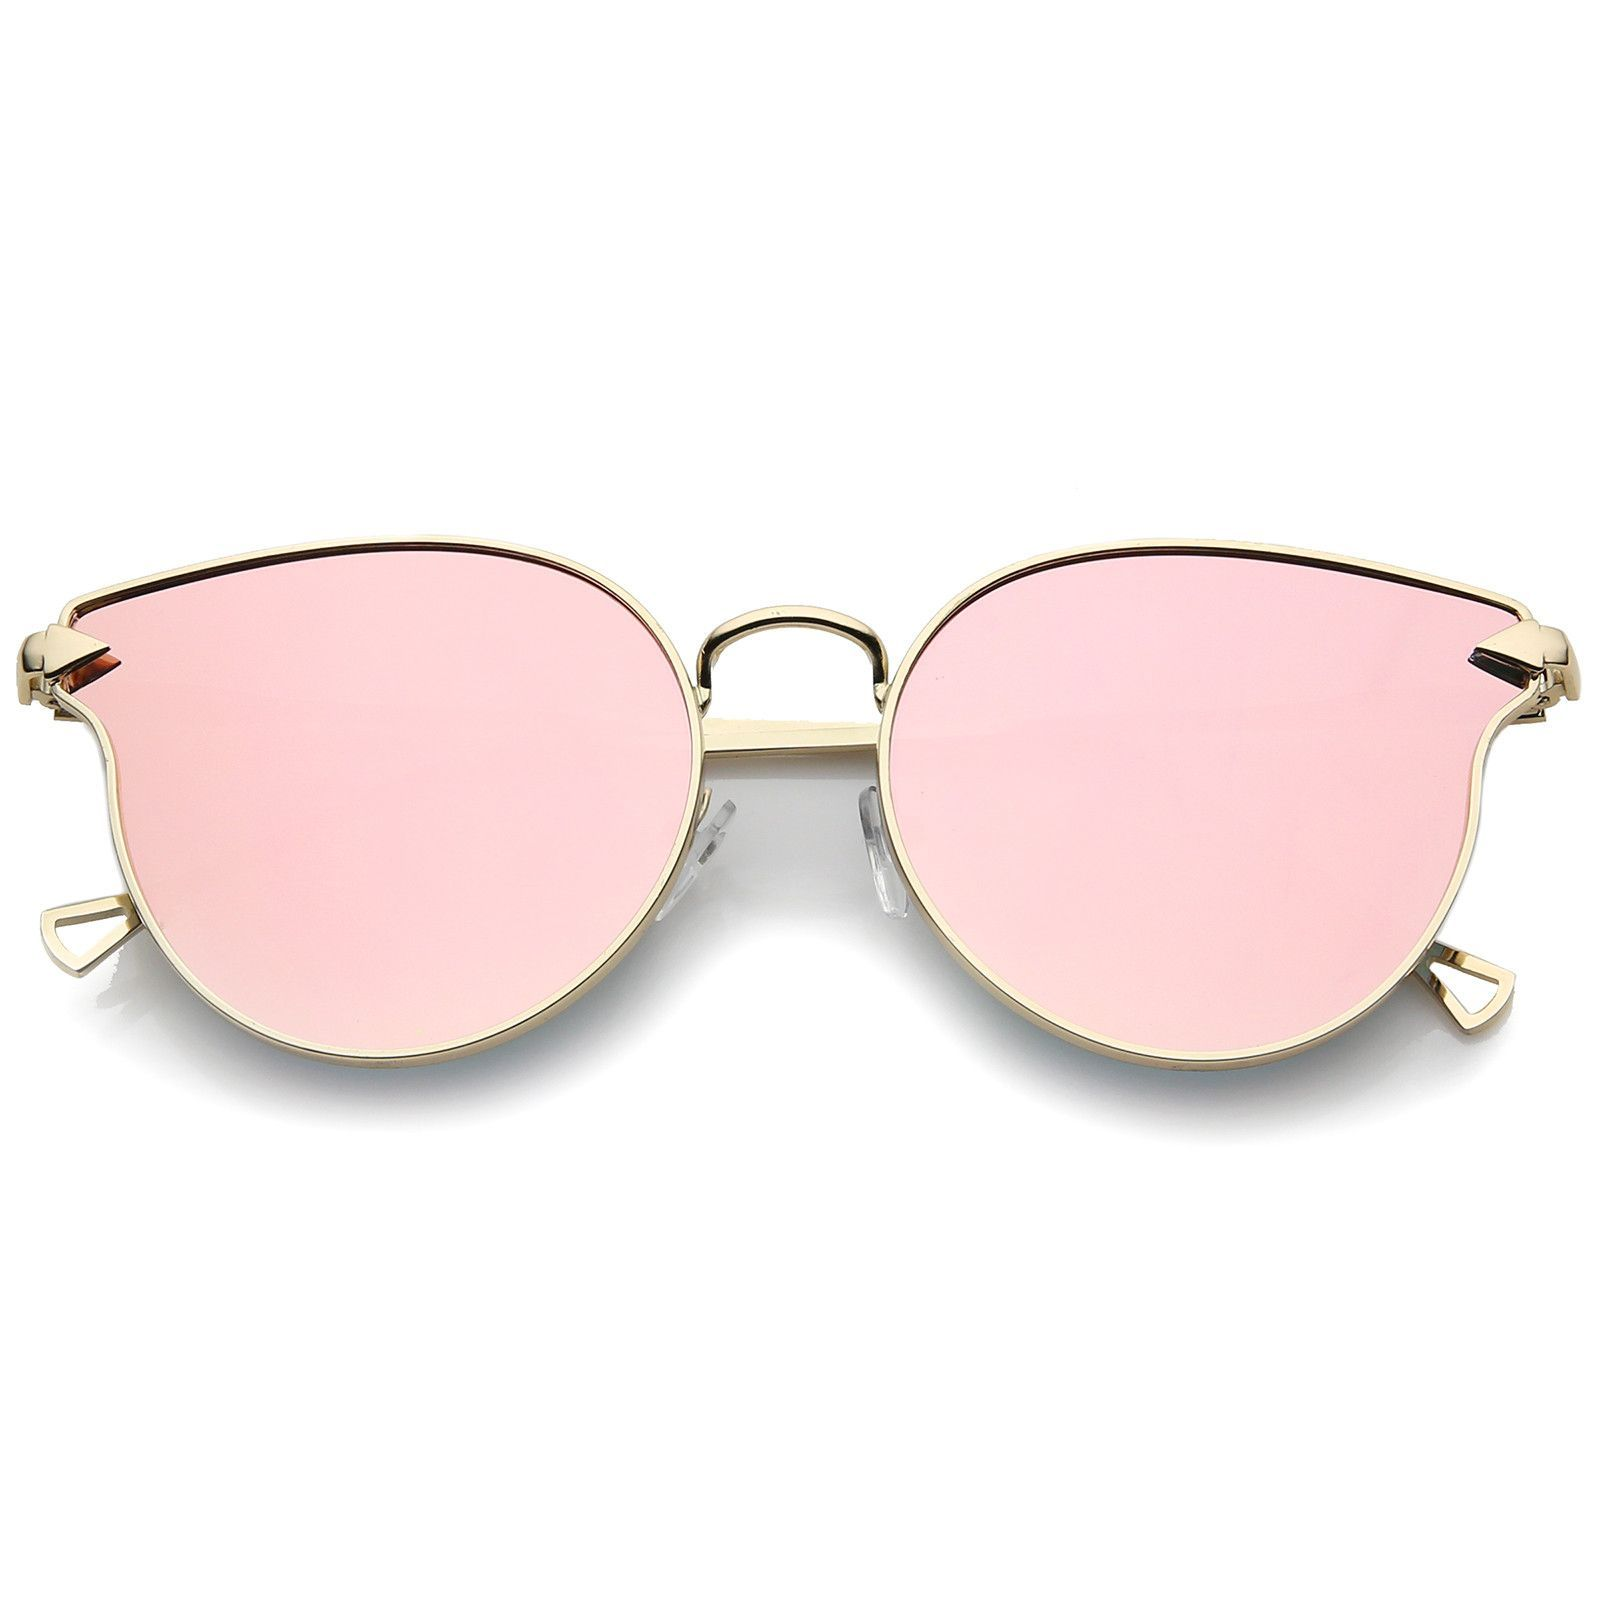 LE Arrow Cateye Sunglasses Women Silver Reflective Mirror Rimless Frame Glasses